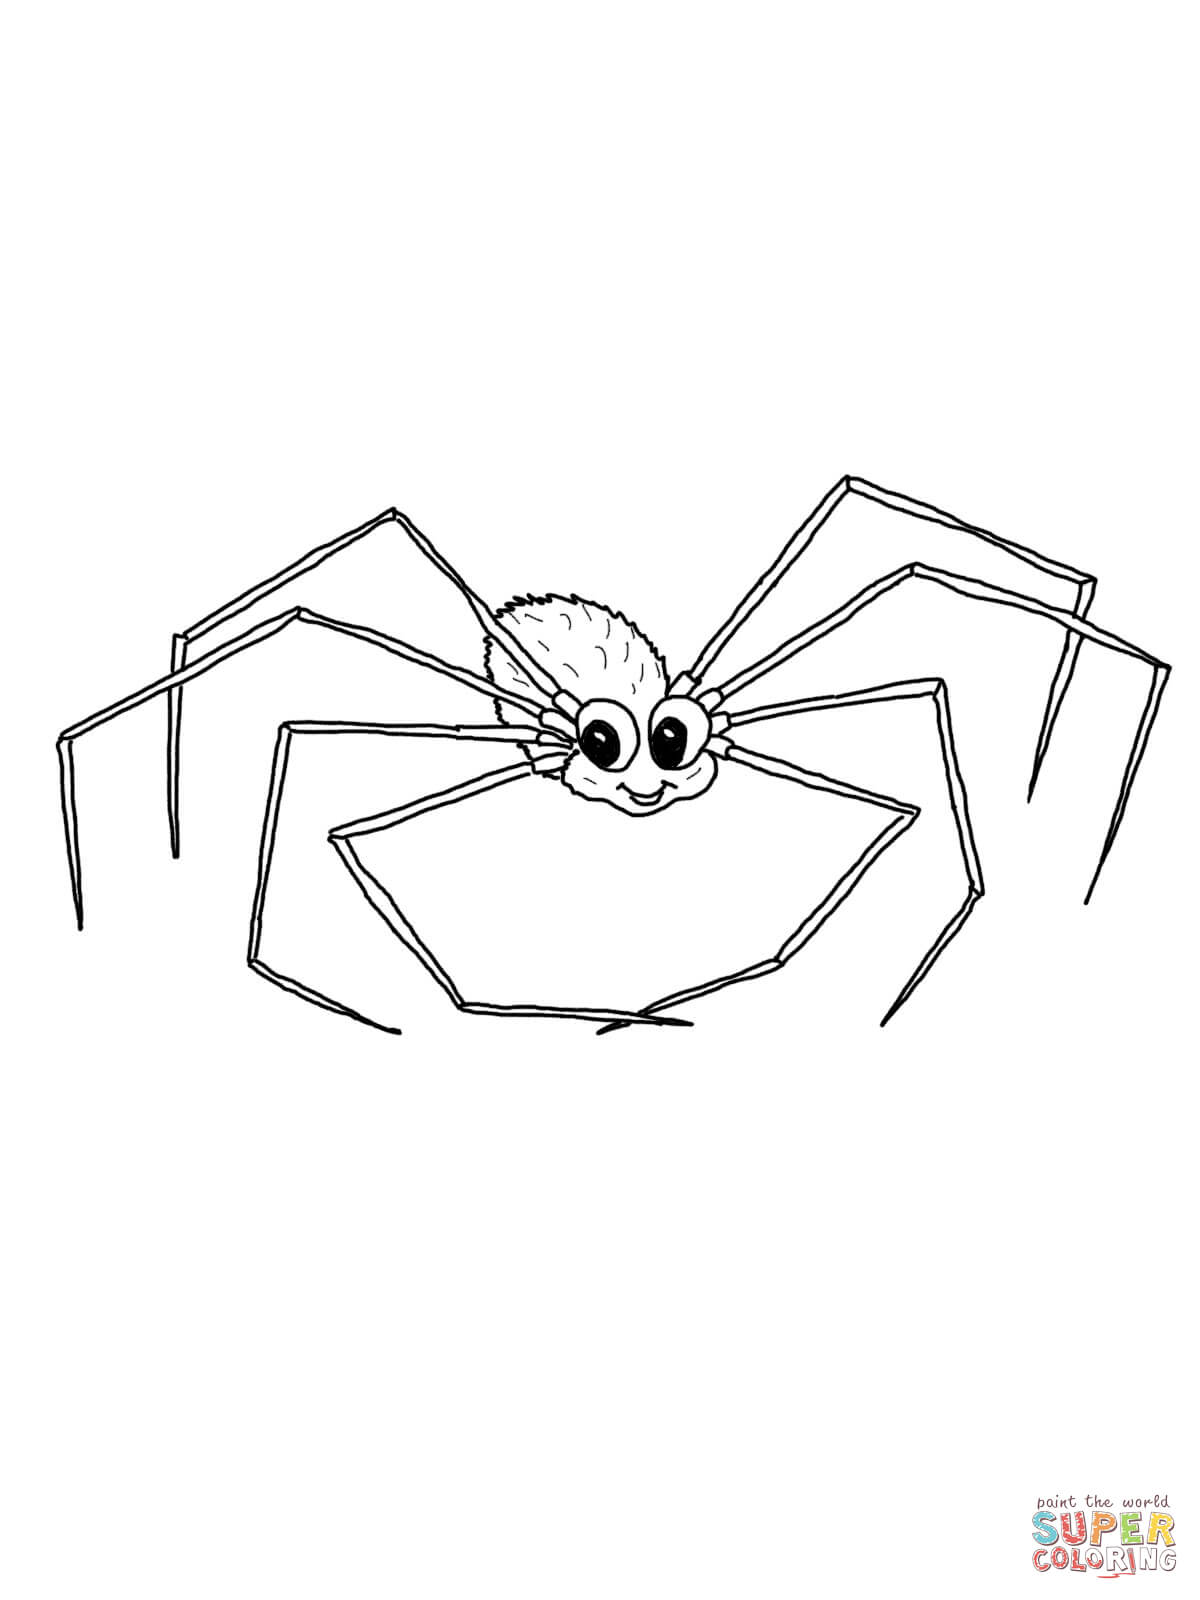 Cute Daddy Long Legs Coloring Page